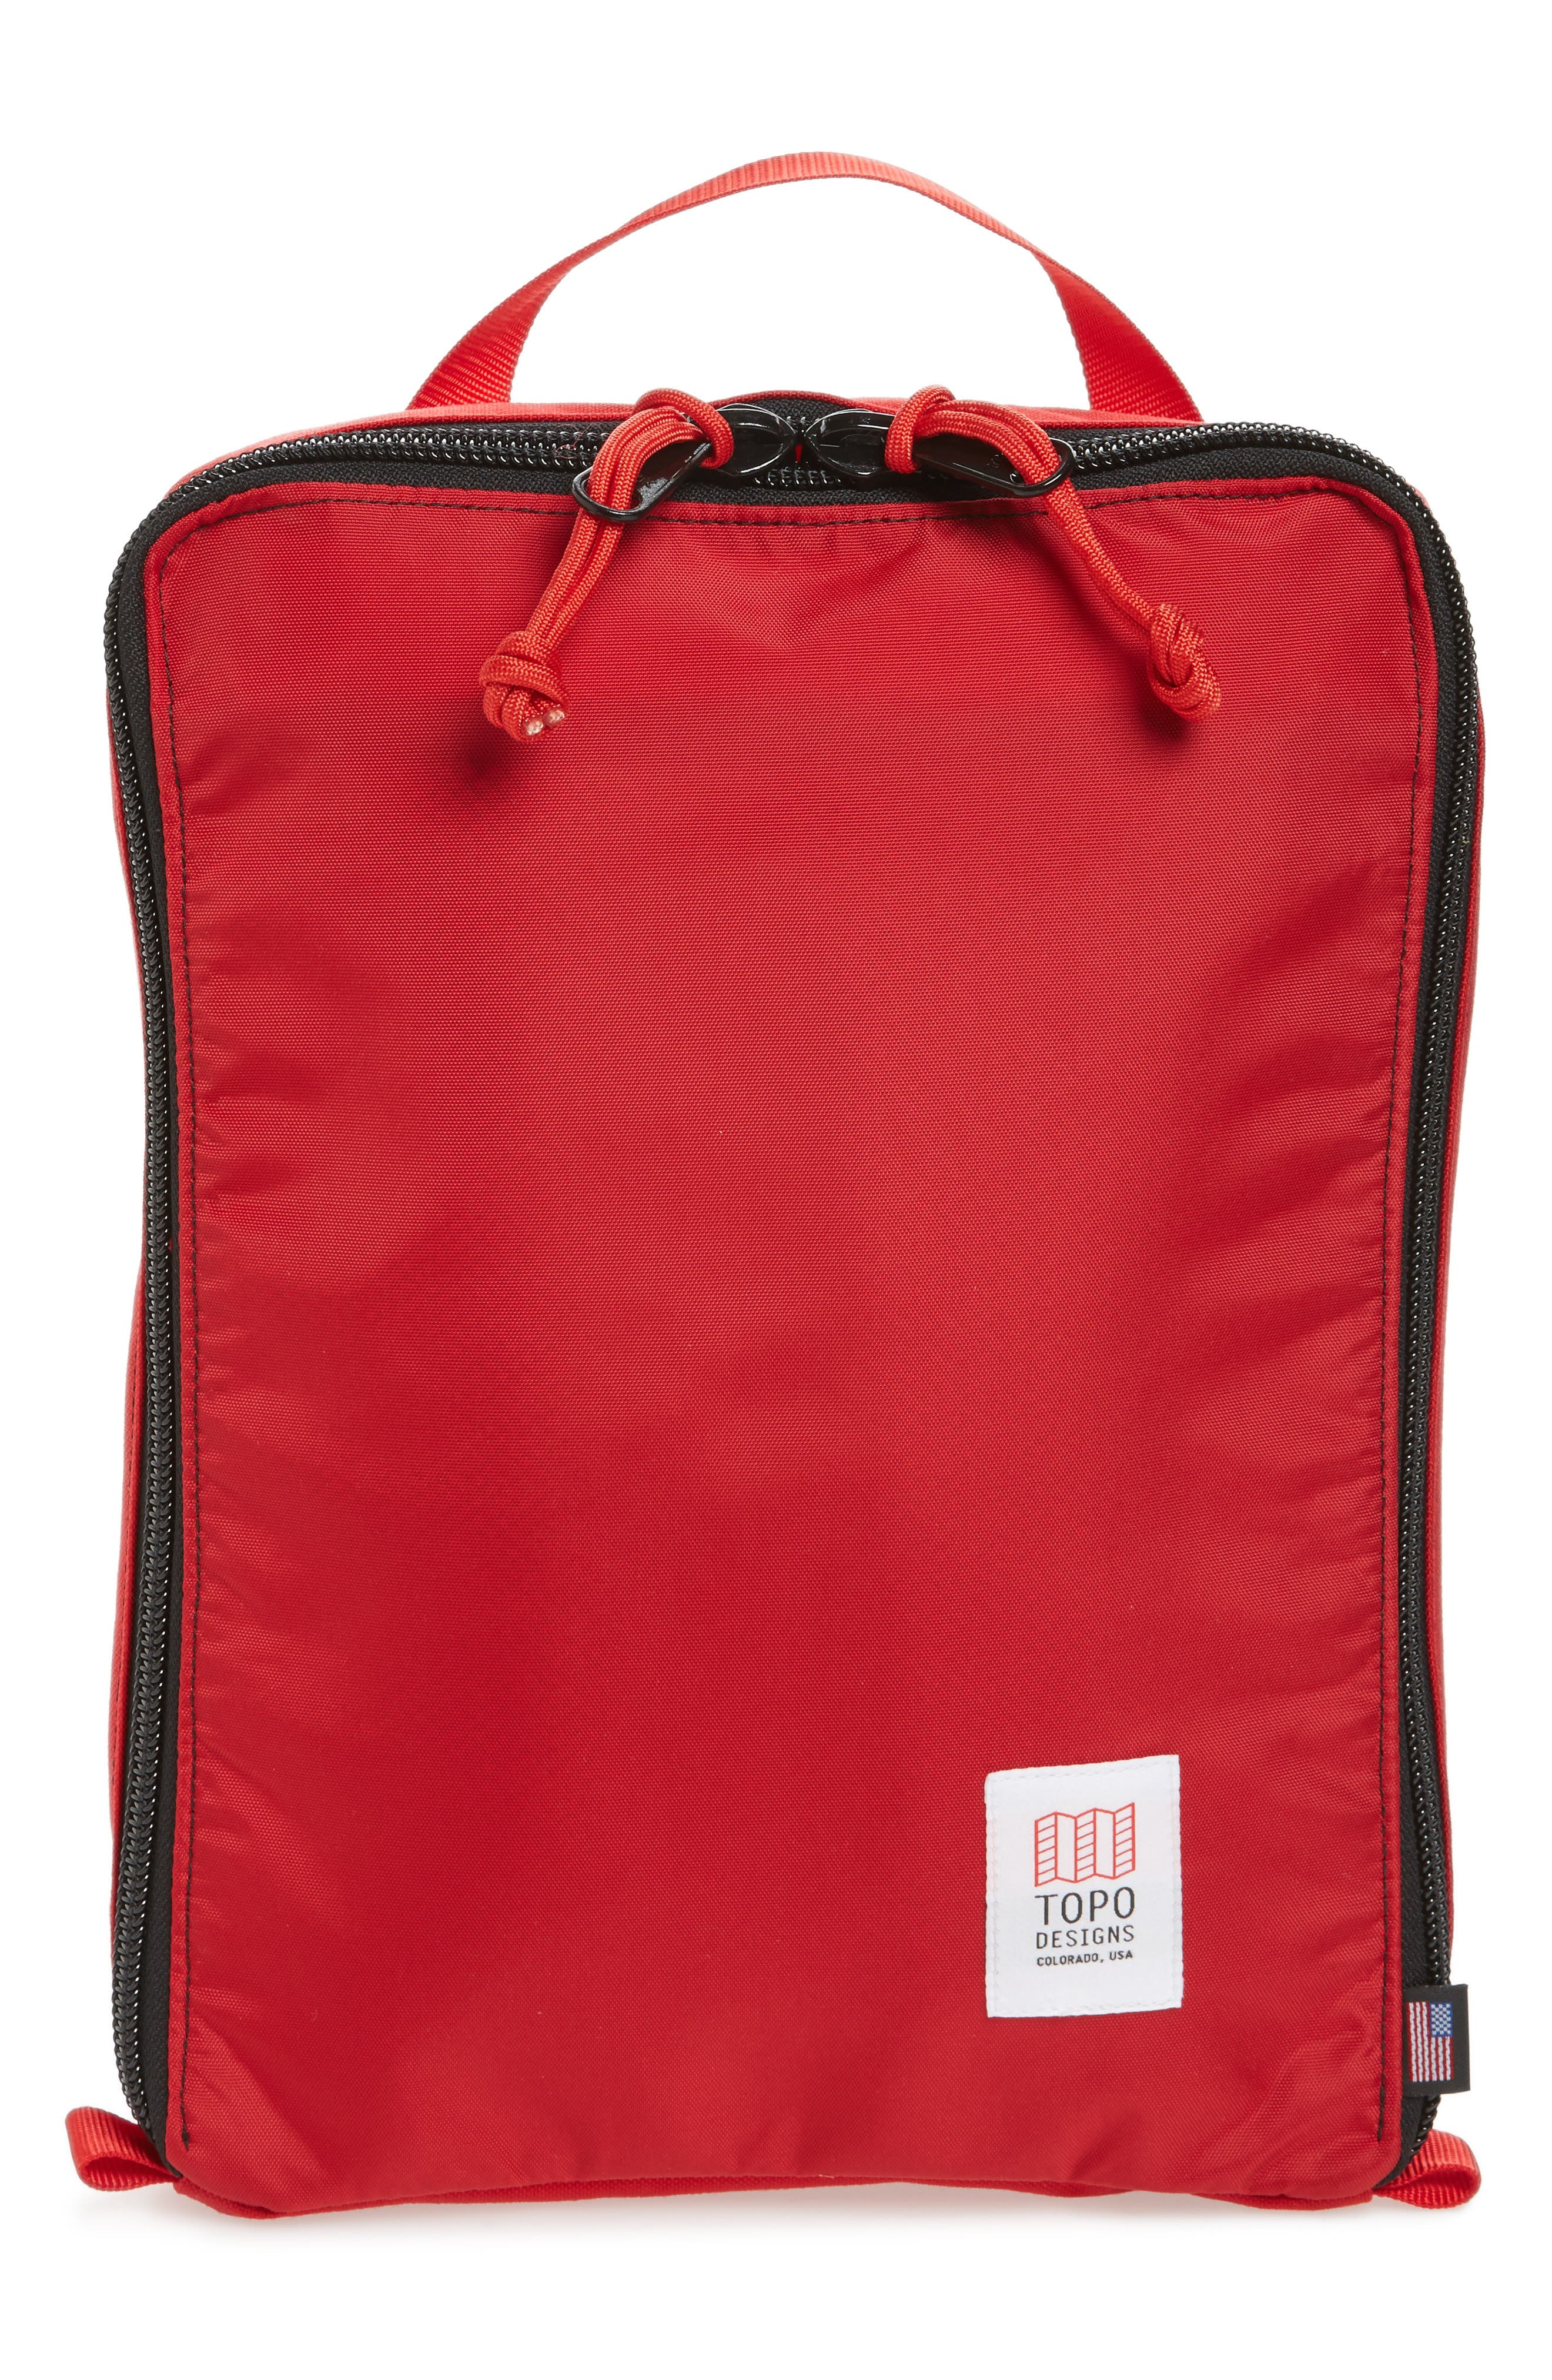 TOPO DESIGNS PACK BAGS TOTE - RED